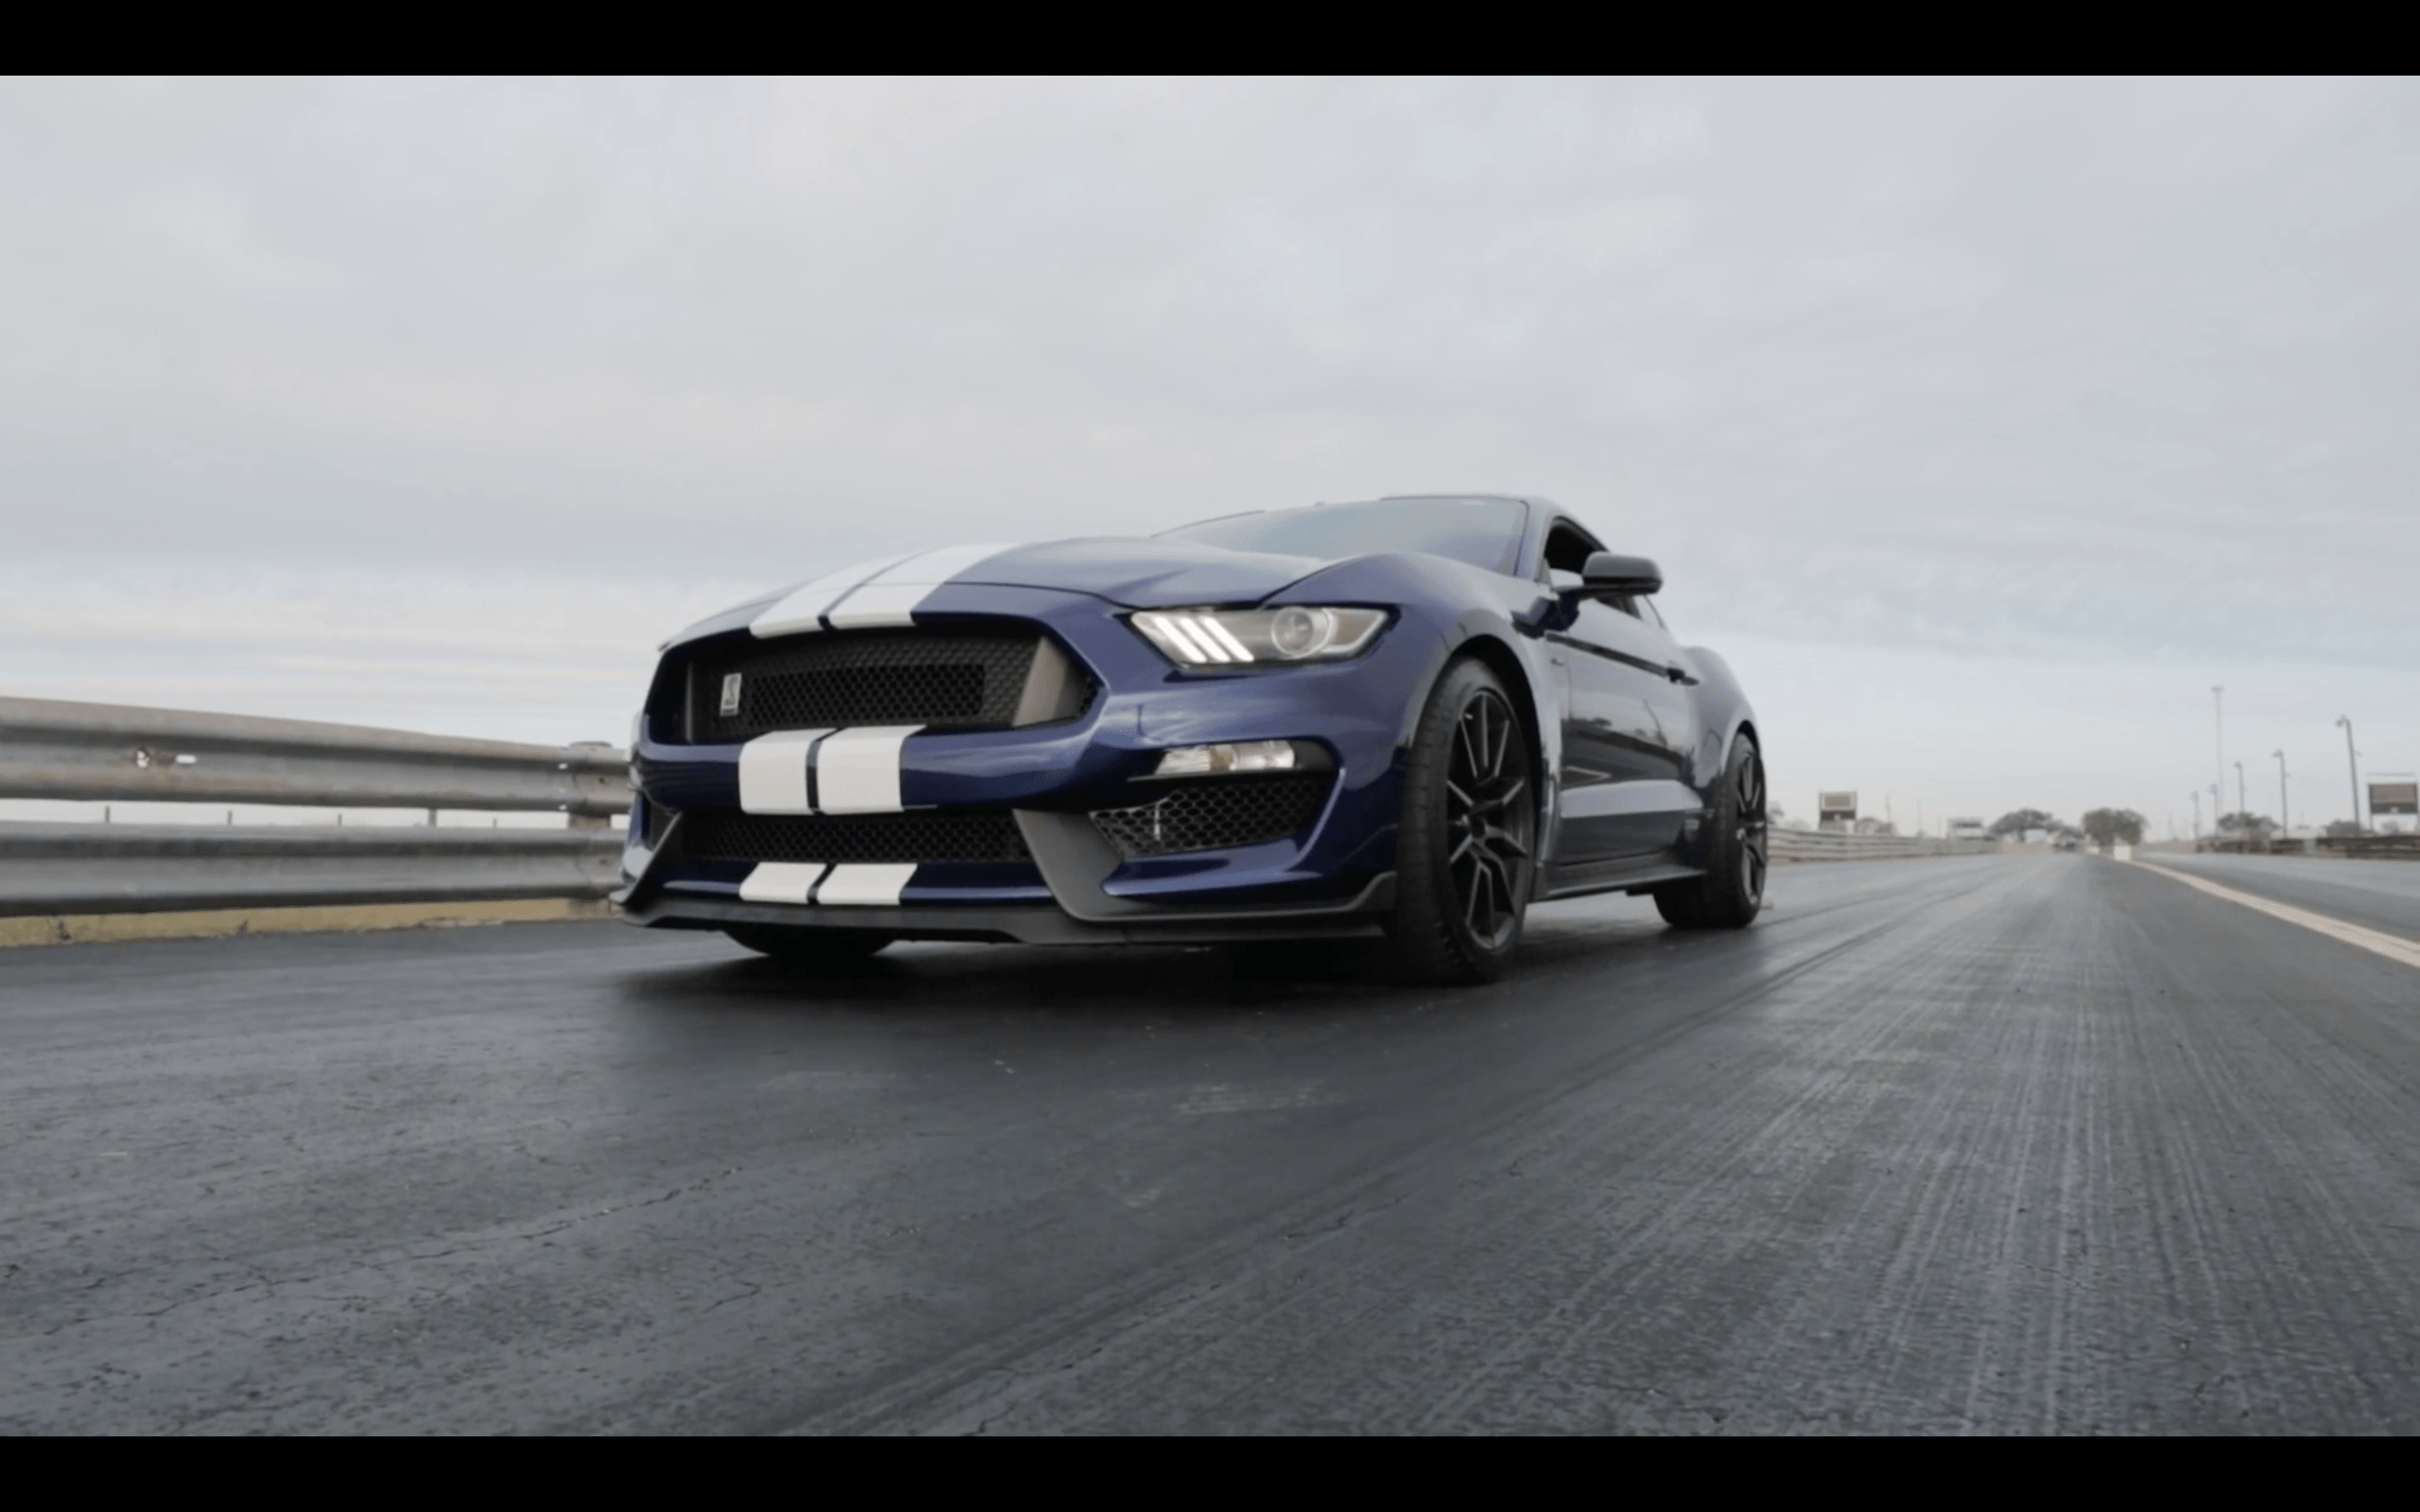 Video hpe800 mustang shelby gt350 dyno acceleration testing http fastfordtv